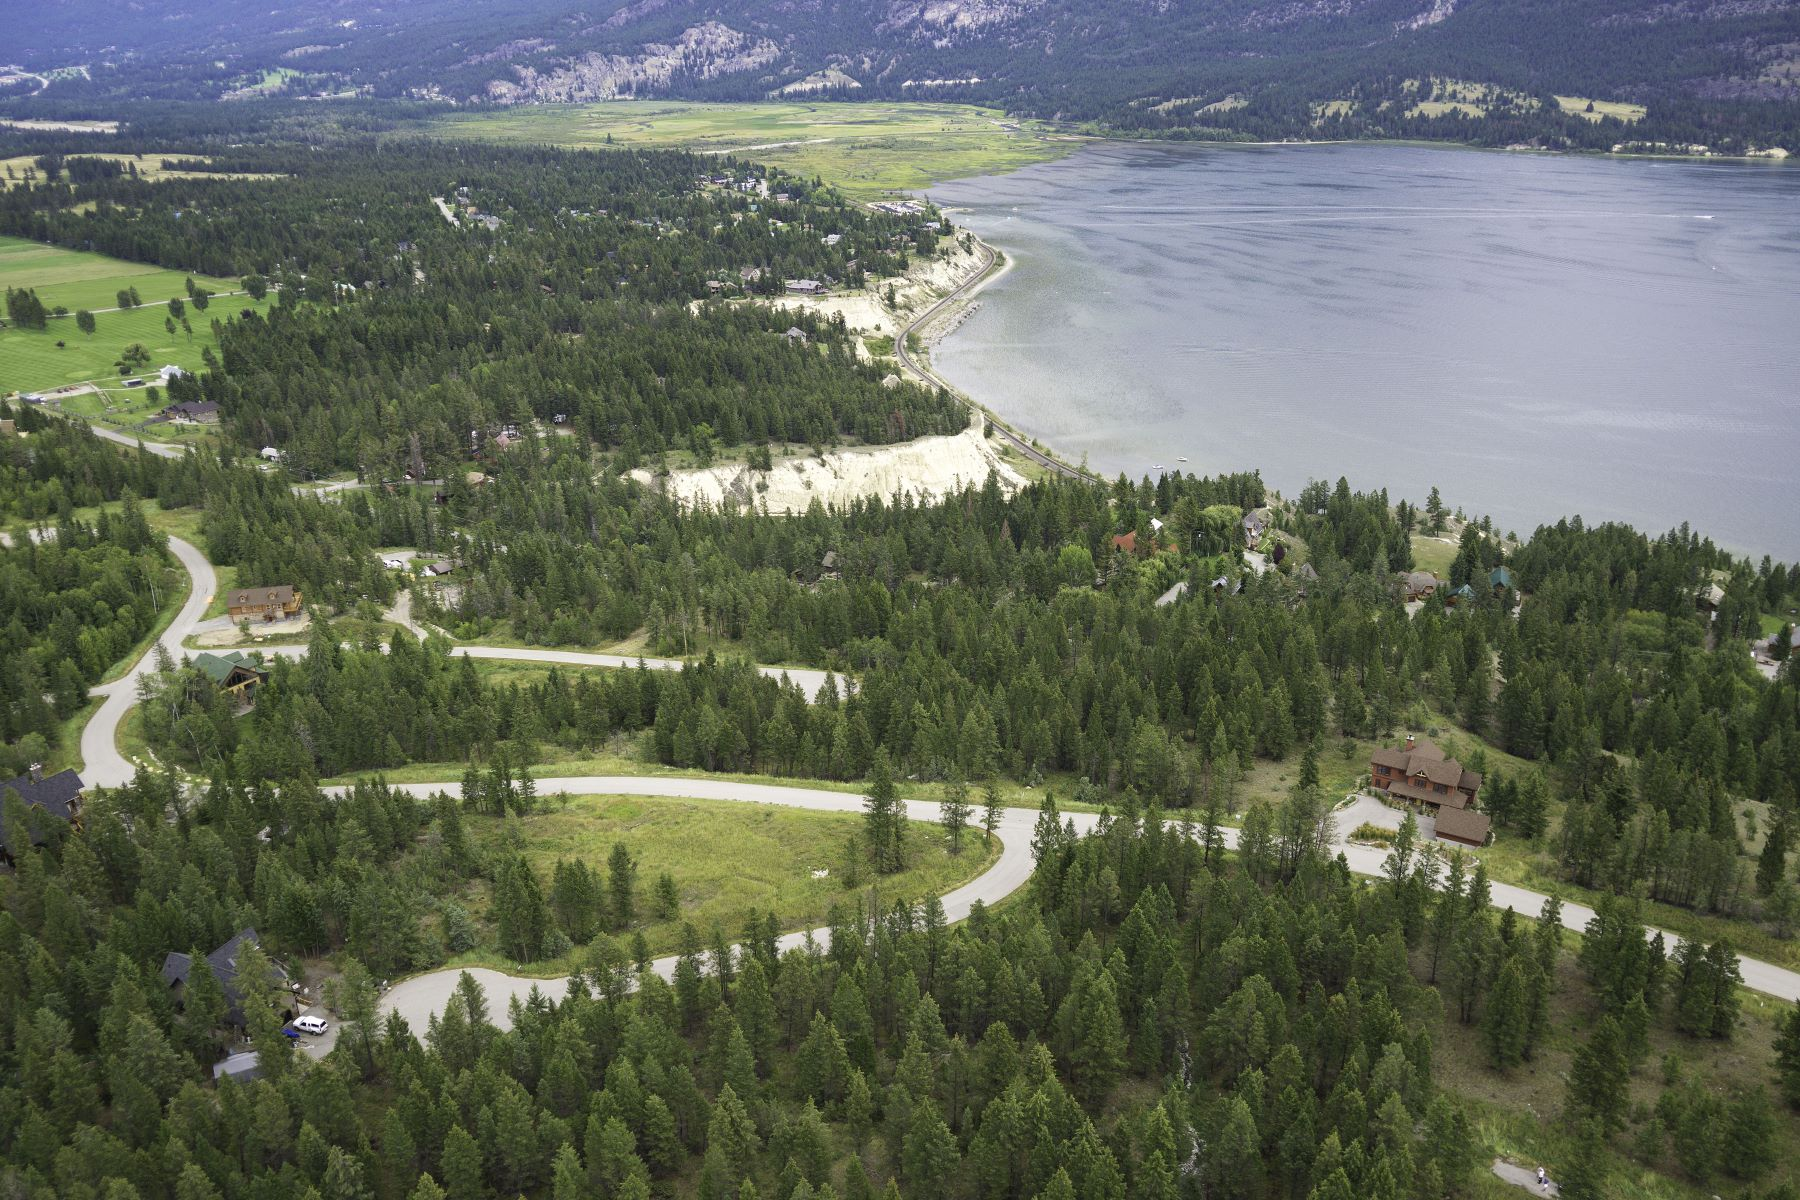 Land for Sale at Bella Vista Estates 24 Valley Vista Way Fairmont Hot Springs, British Columbia V0B 1L2 Canada